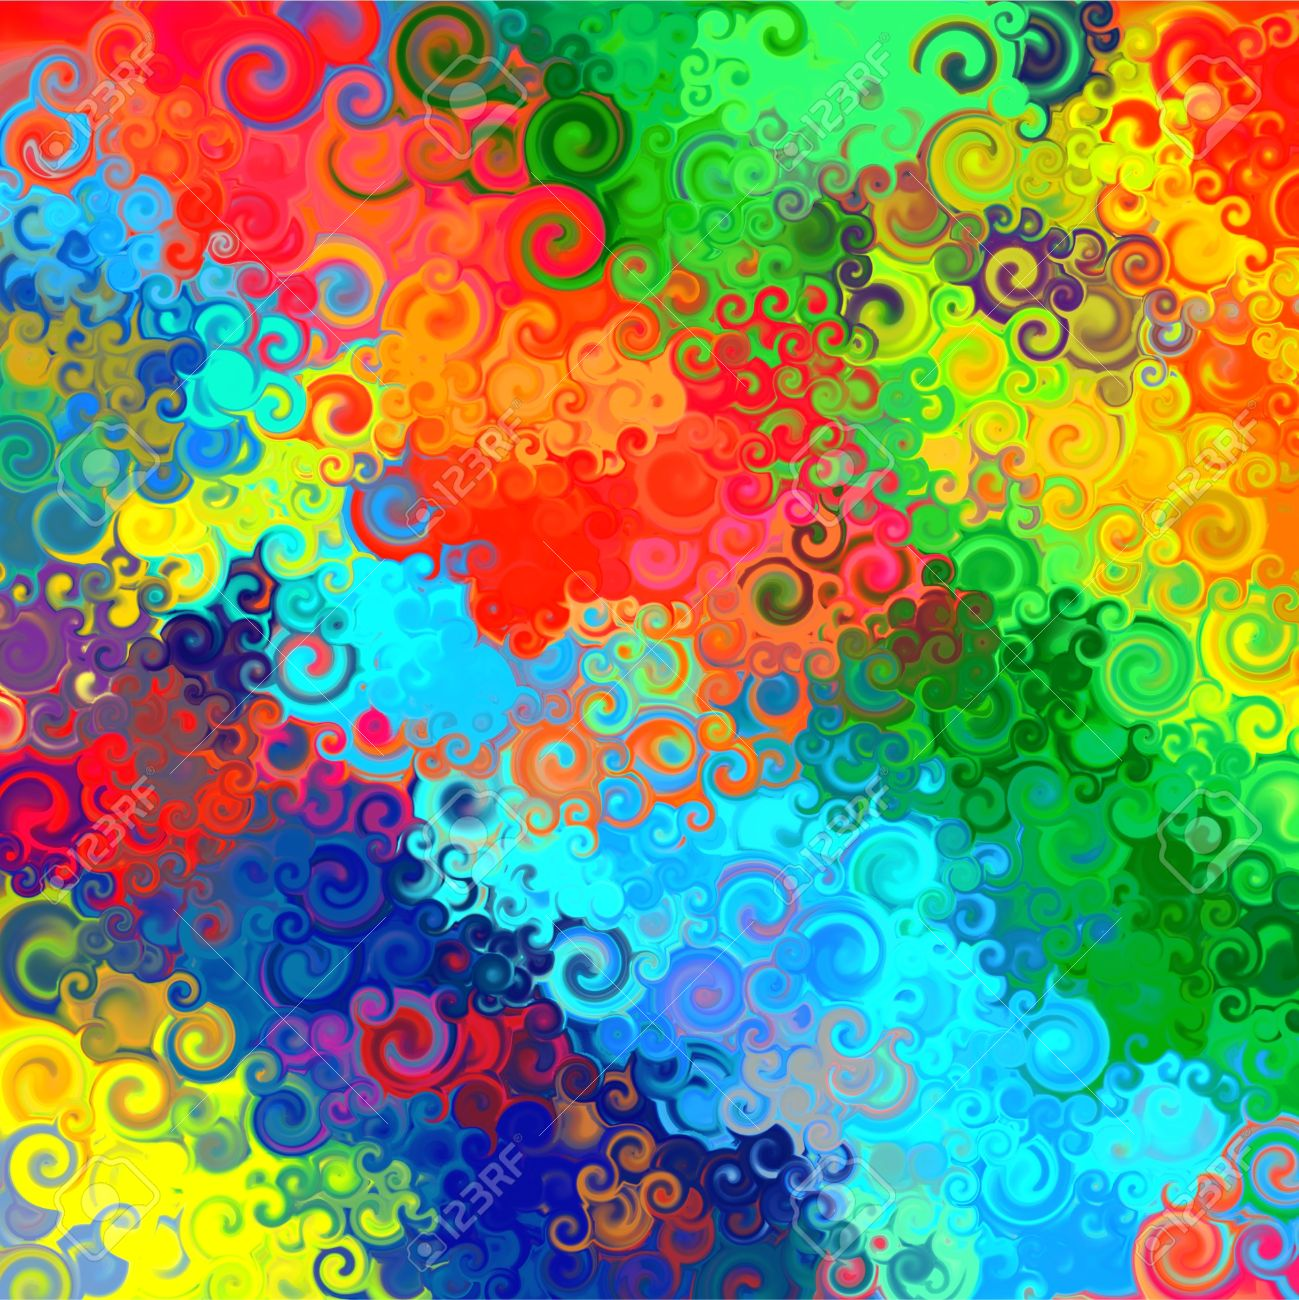 Abstract Rainbow Colorful Watercolor Swirl Art Background Pattern Stock Photo Picture And Royalty Free Image Image 17967454